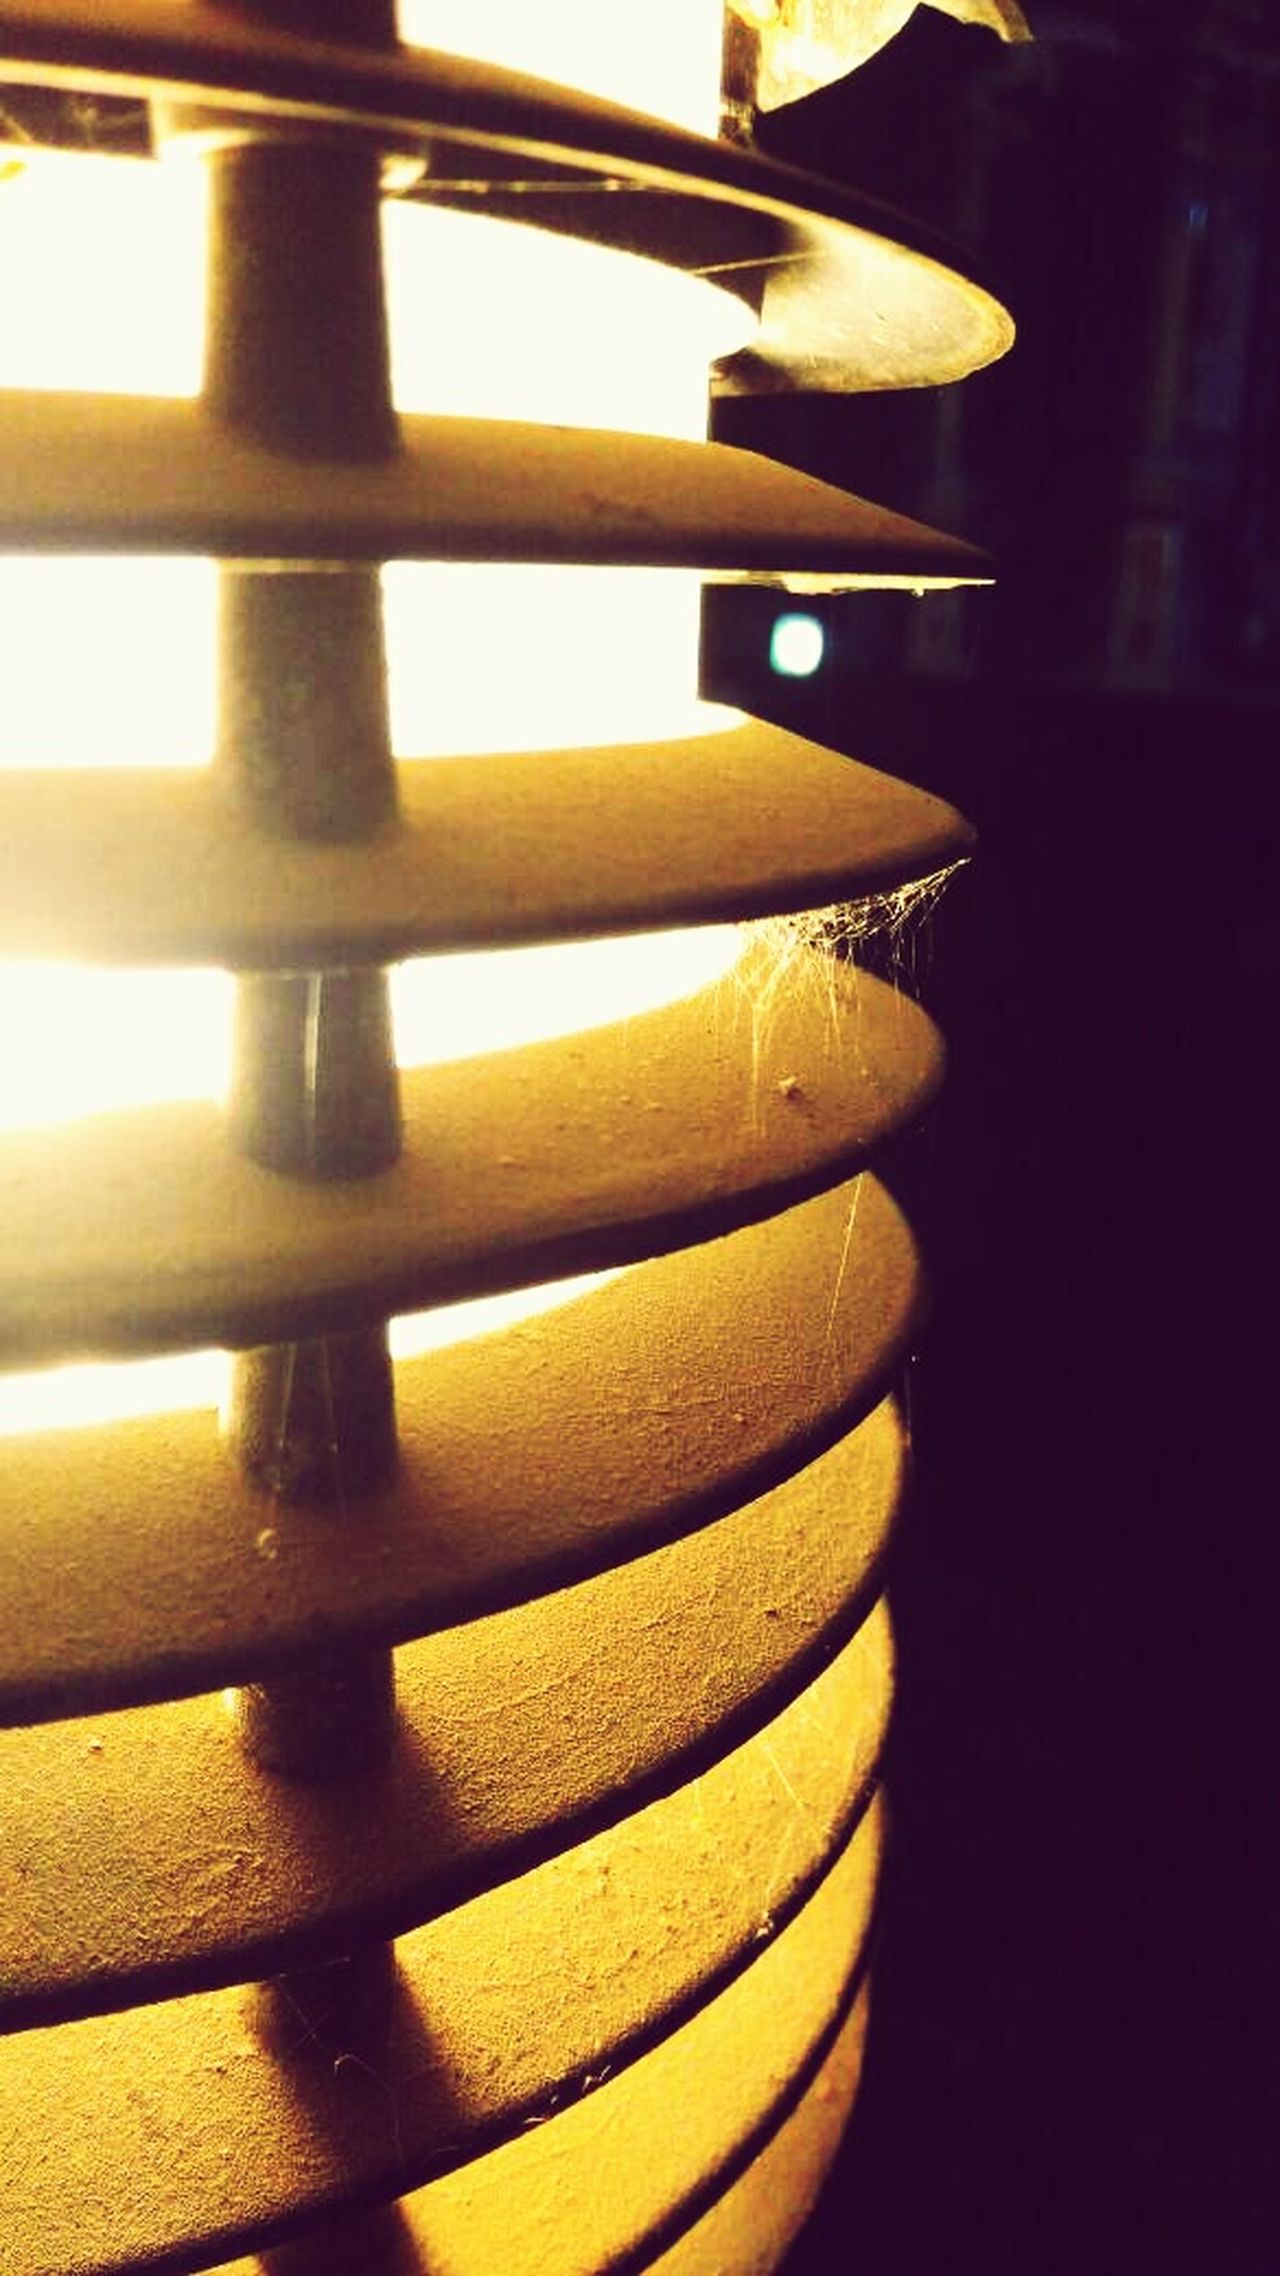 In A Row No People Yellow Close-up Night Indoors  Simple Photography Illuminated From My Point Of View EyeEm Gallery Best Of EyeEm Lamplight Dusty Web Spider Web Yellowlights Pattern, Texture, Shape And Form SimpleyetBeautiful EyeEmBestPics Beauty In Ordinary Things Bright Light Lamps And Lights. Art Is Everywhere Close Up Maximum Closeness